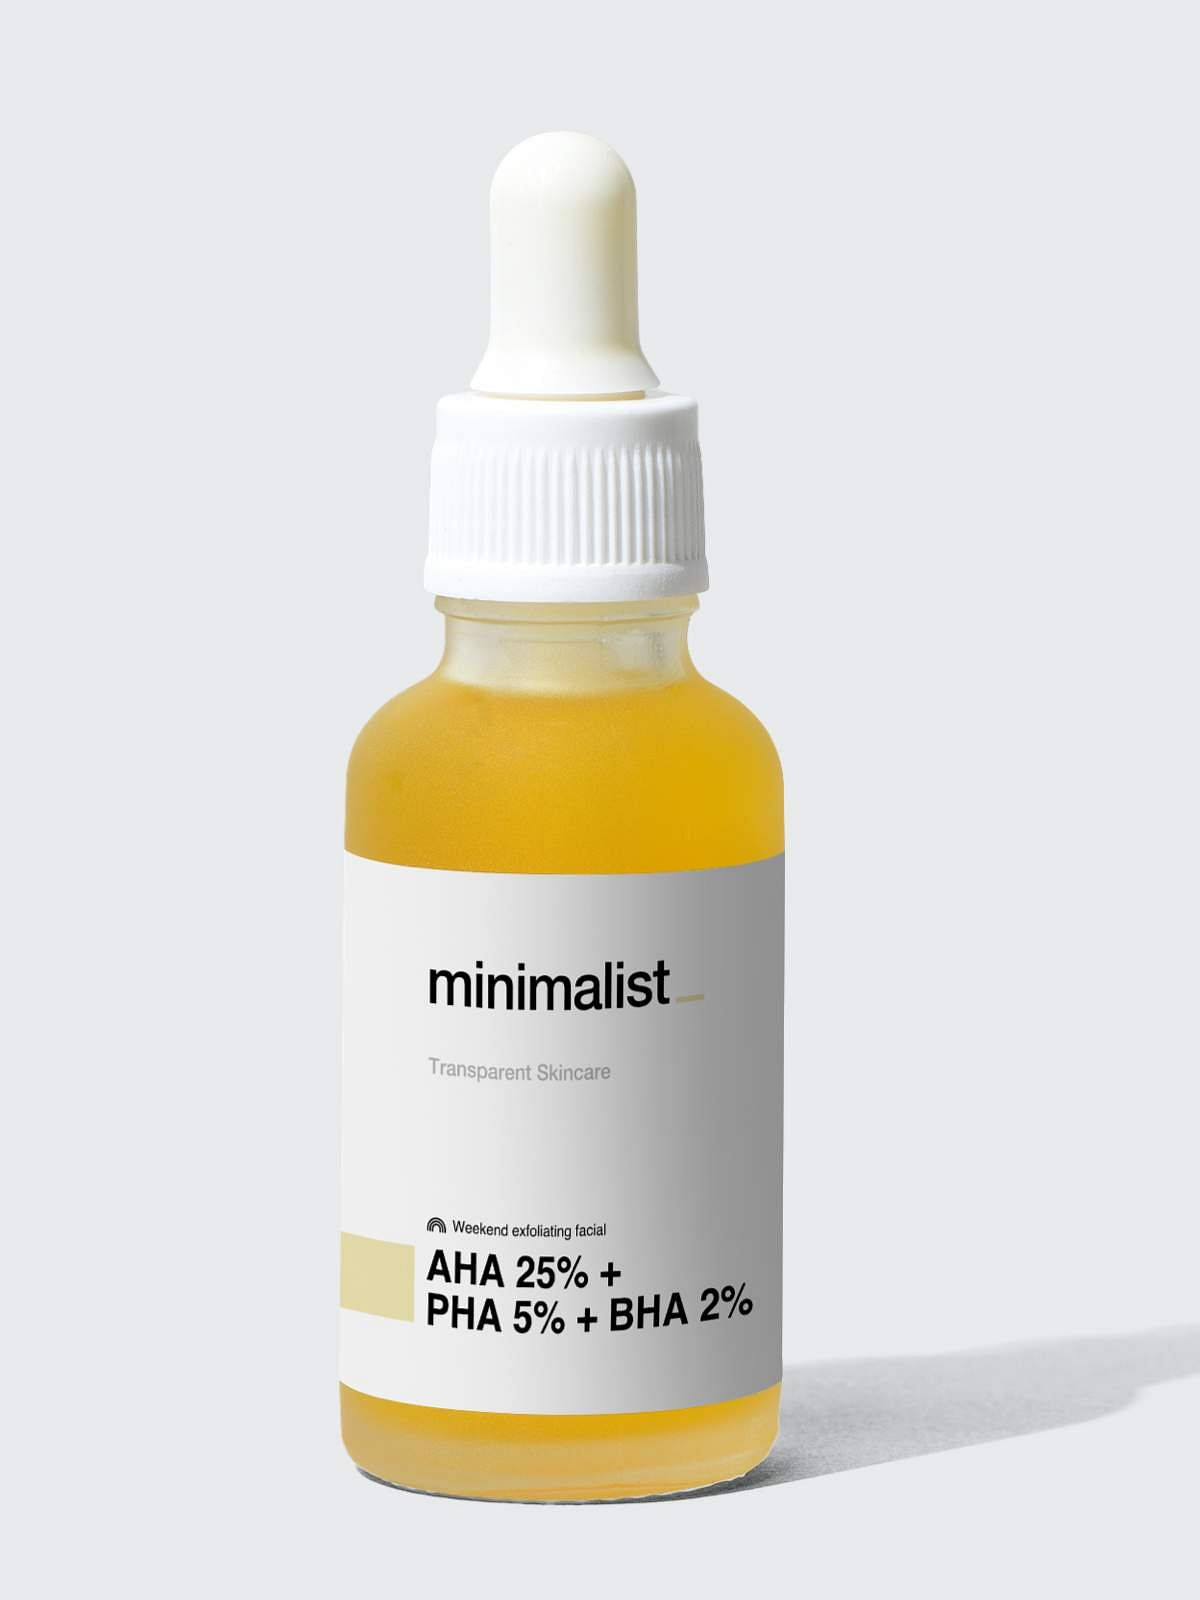 Brightening and hydrating serums